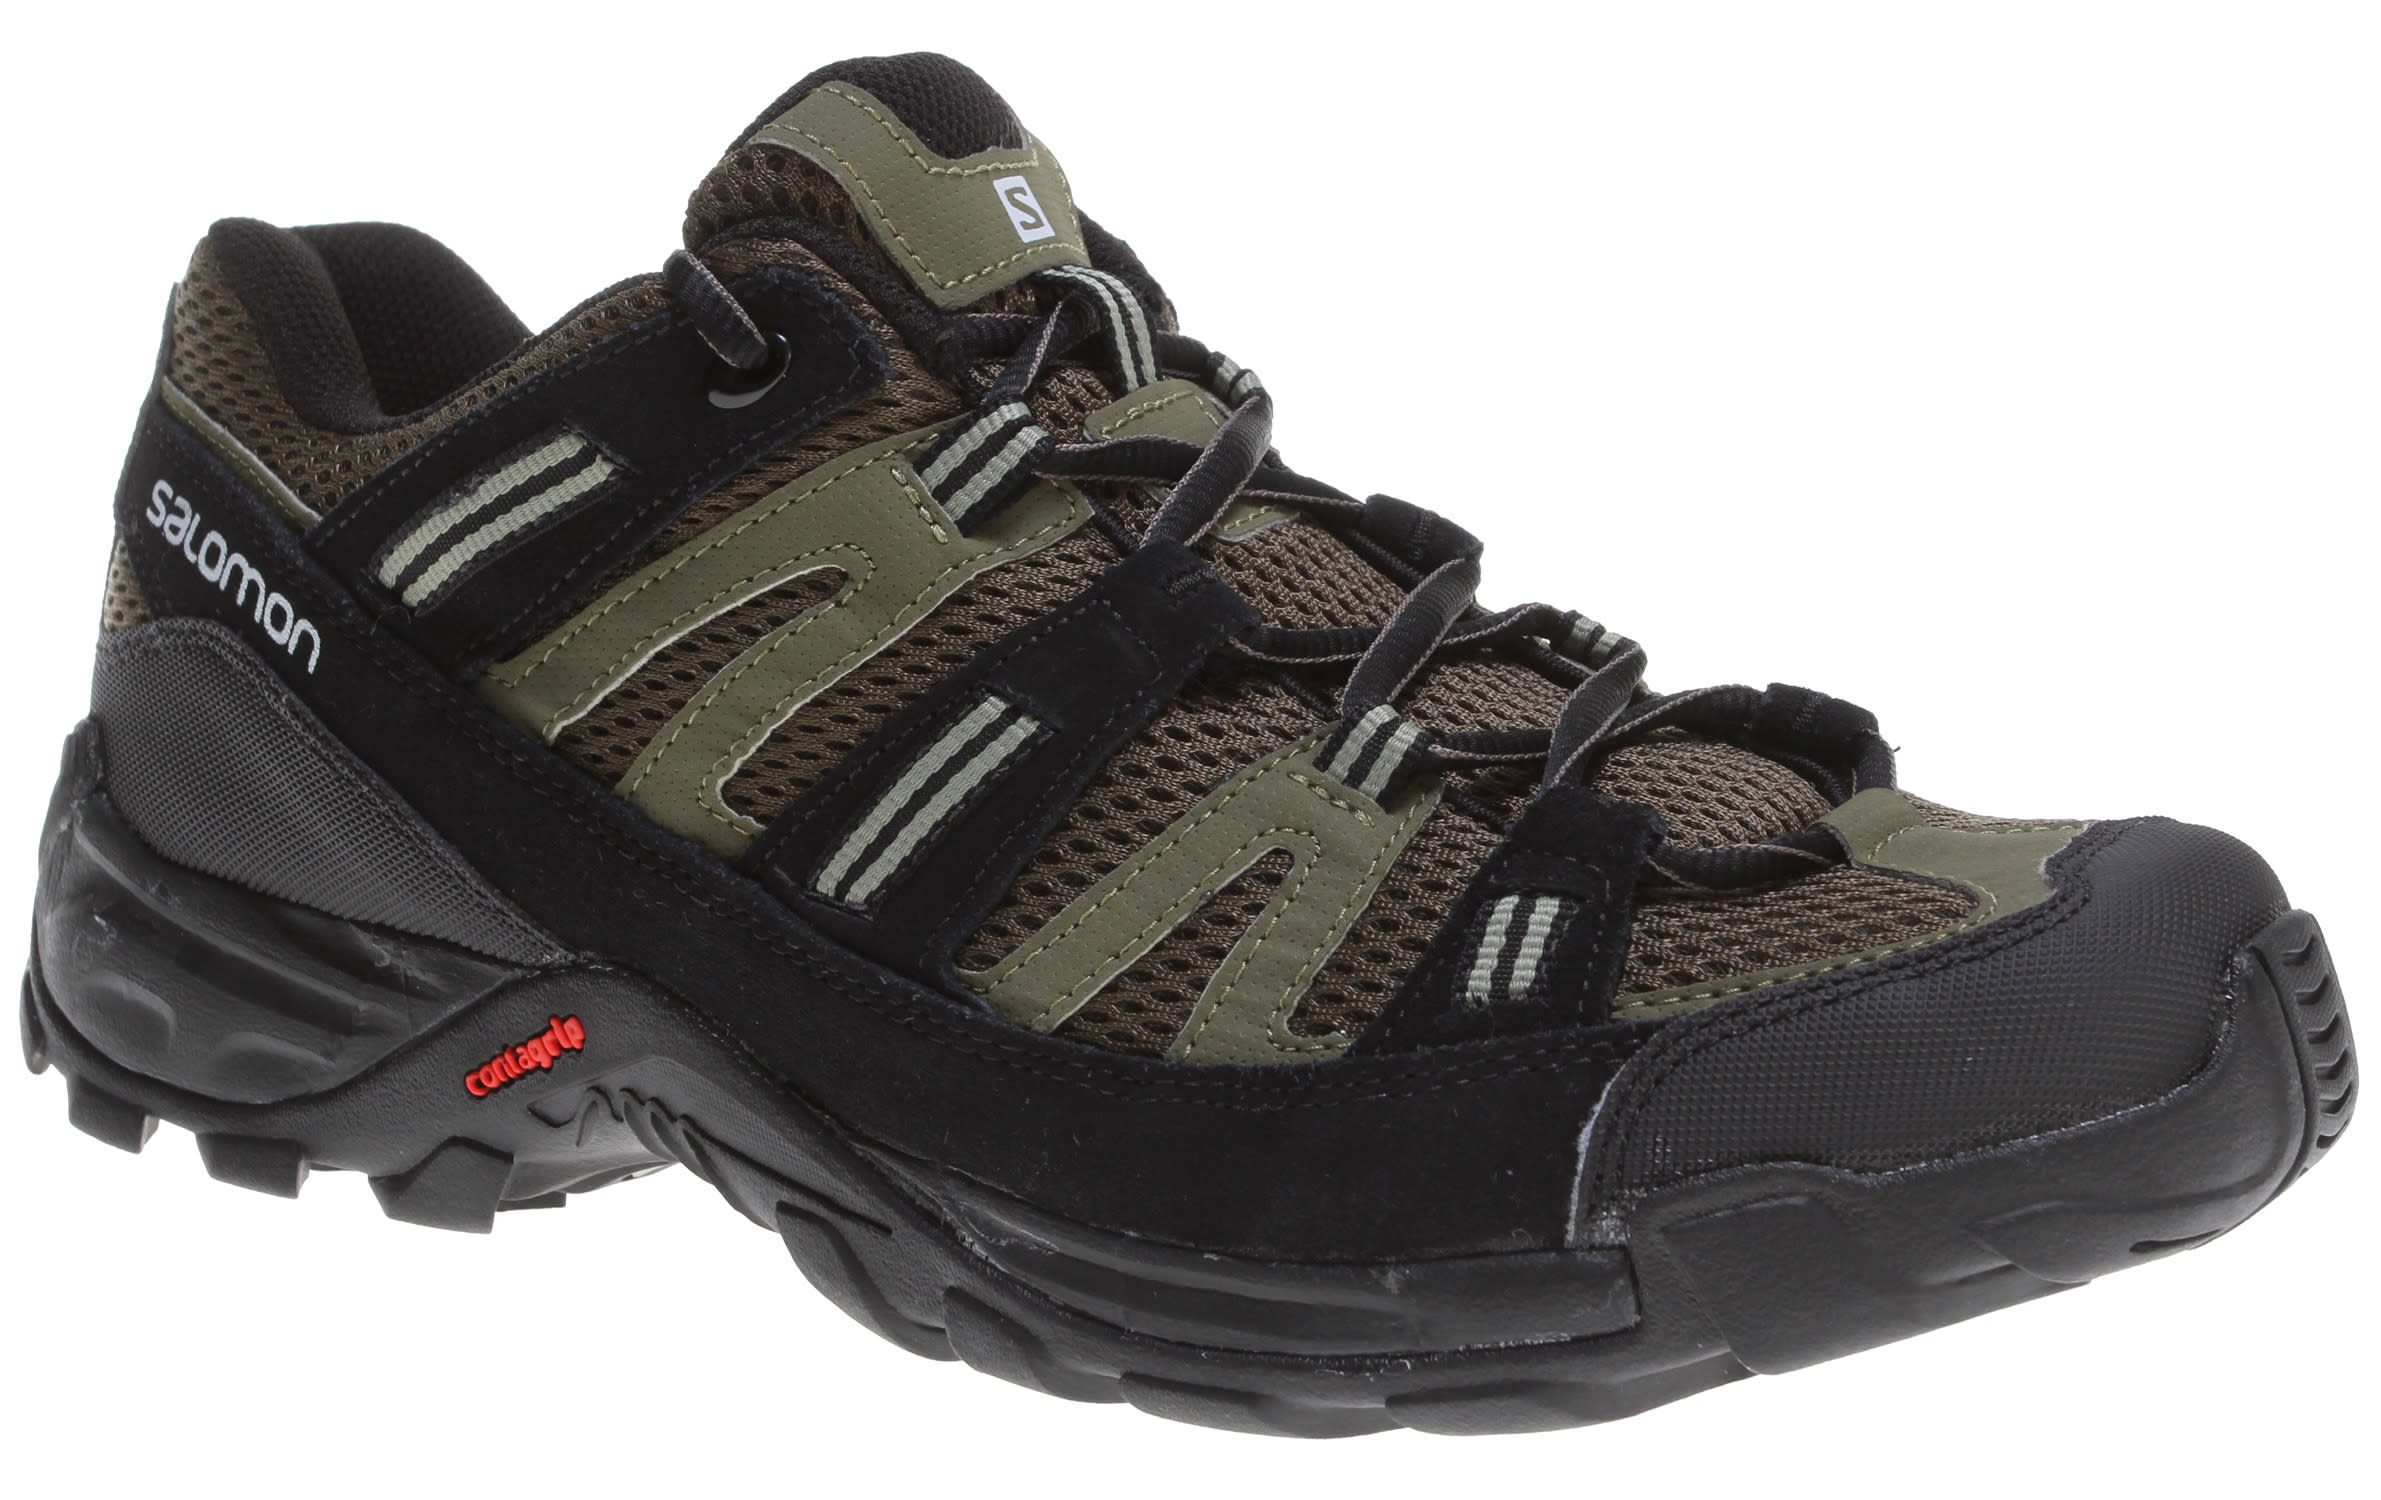 Sale Salomon Cherokee Hiking Shoes up to off